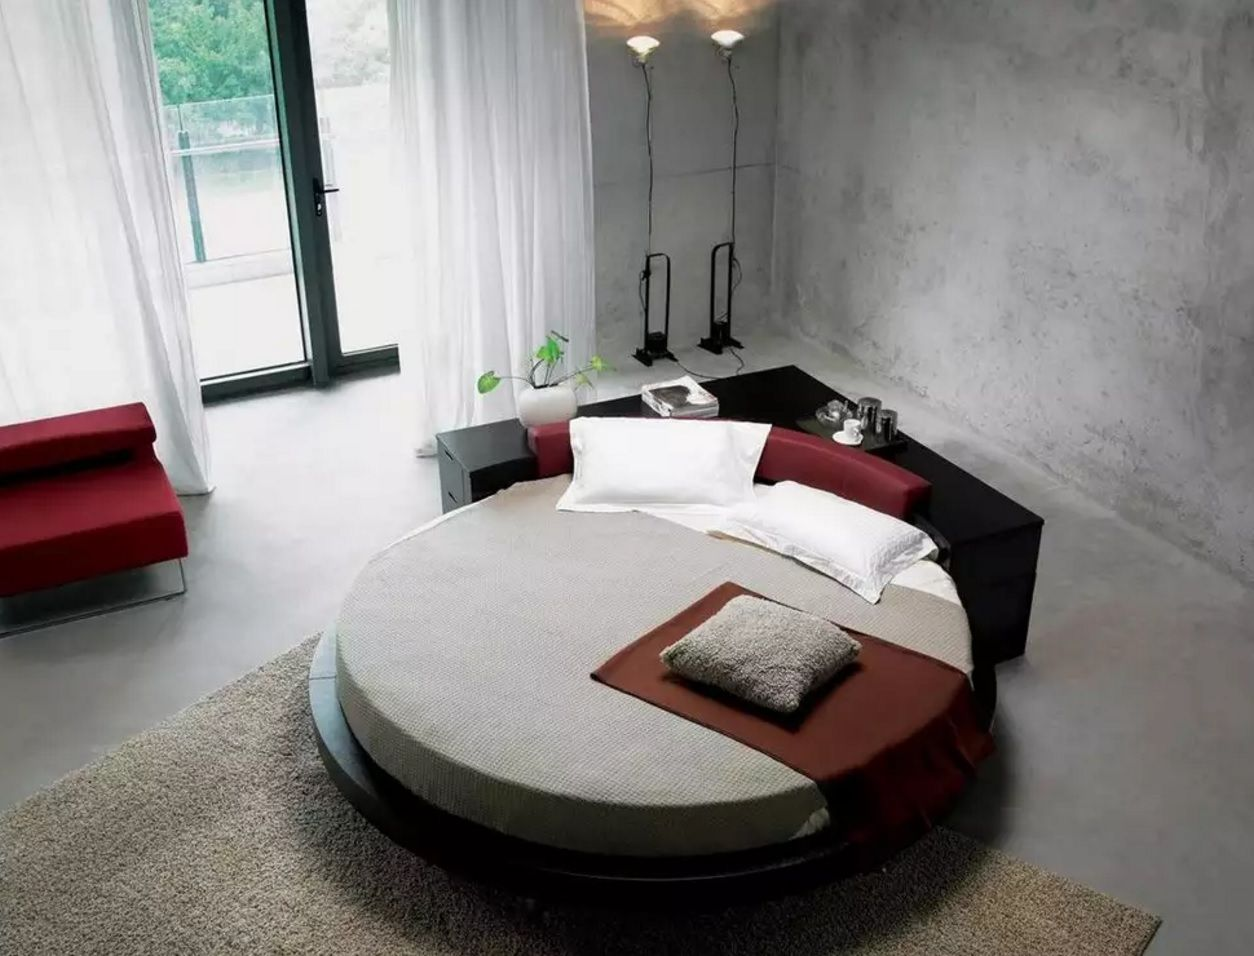 Circle Bed of Unique Bedroom Interior Design. Loft and industrial style mixing with the round bed as an accent of the overall atmosphere